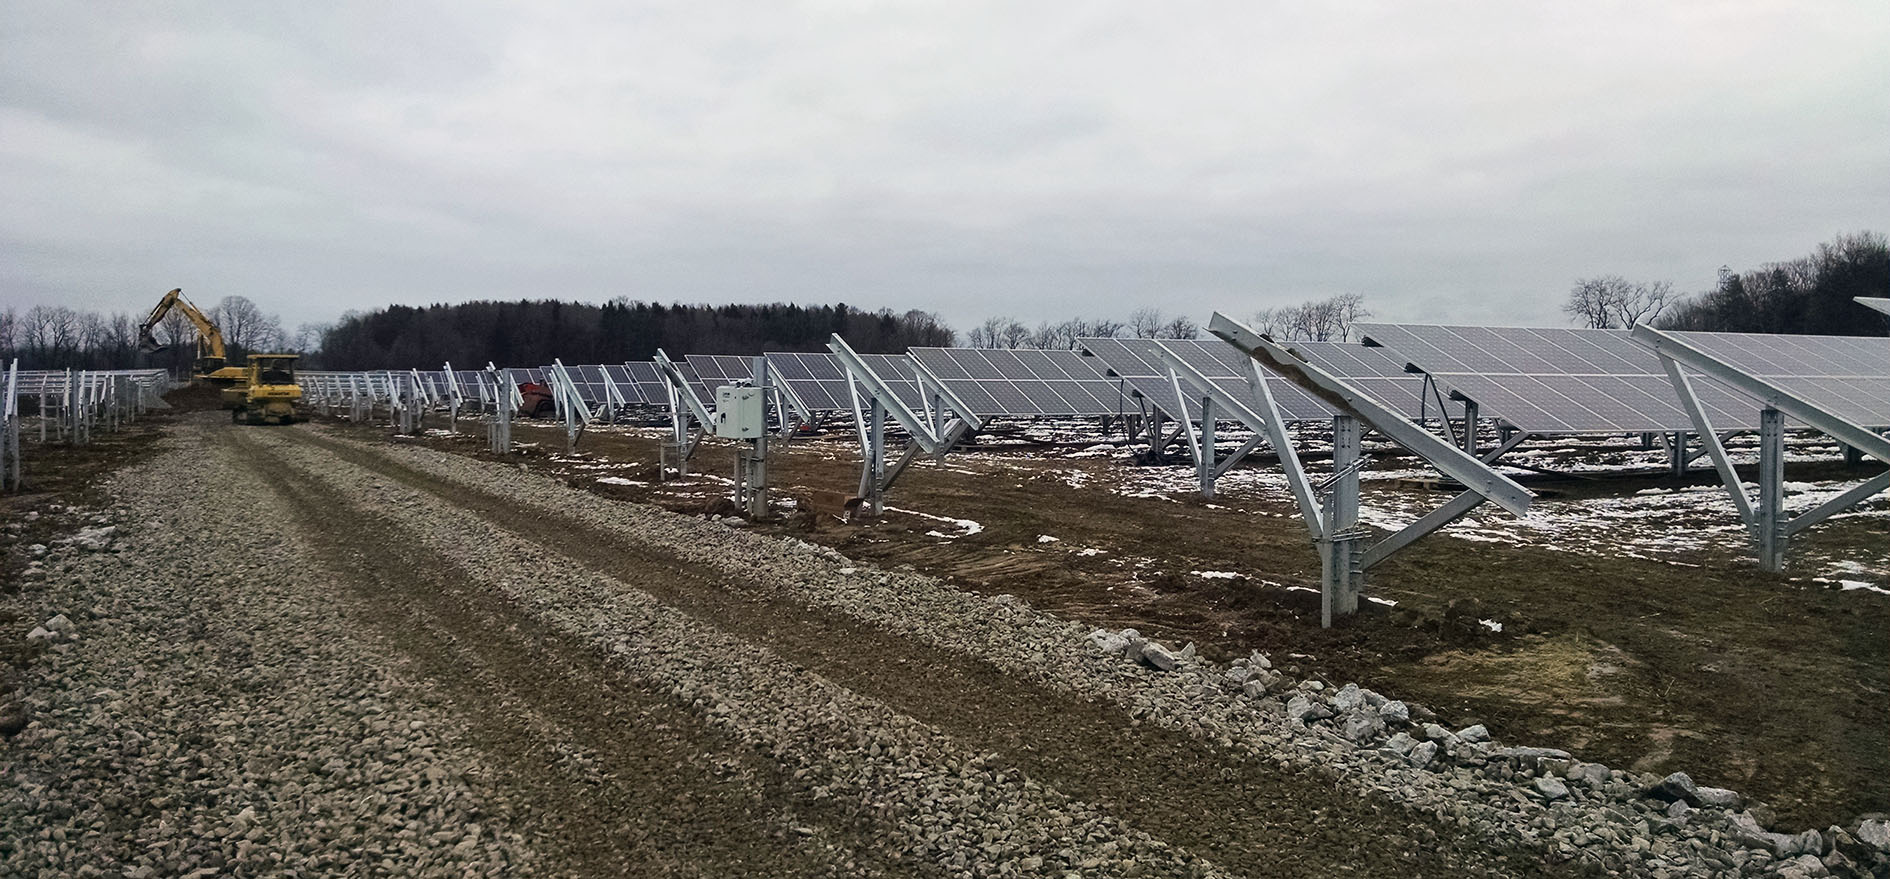 Photo of GCSD's solar farm panels